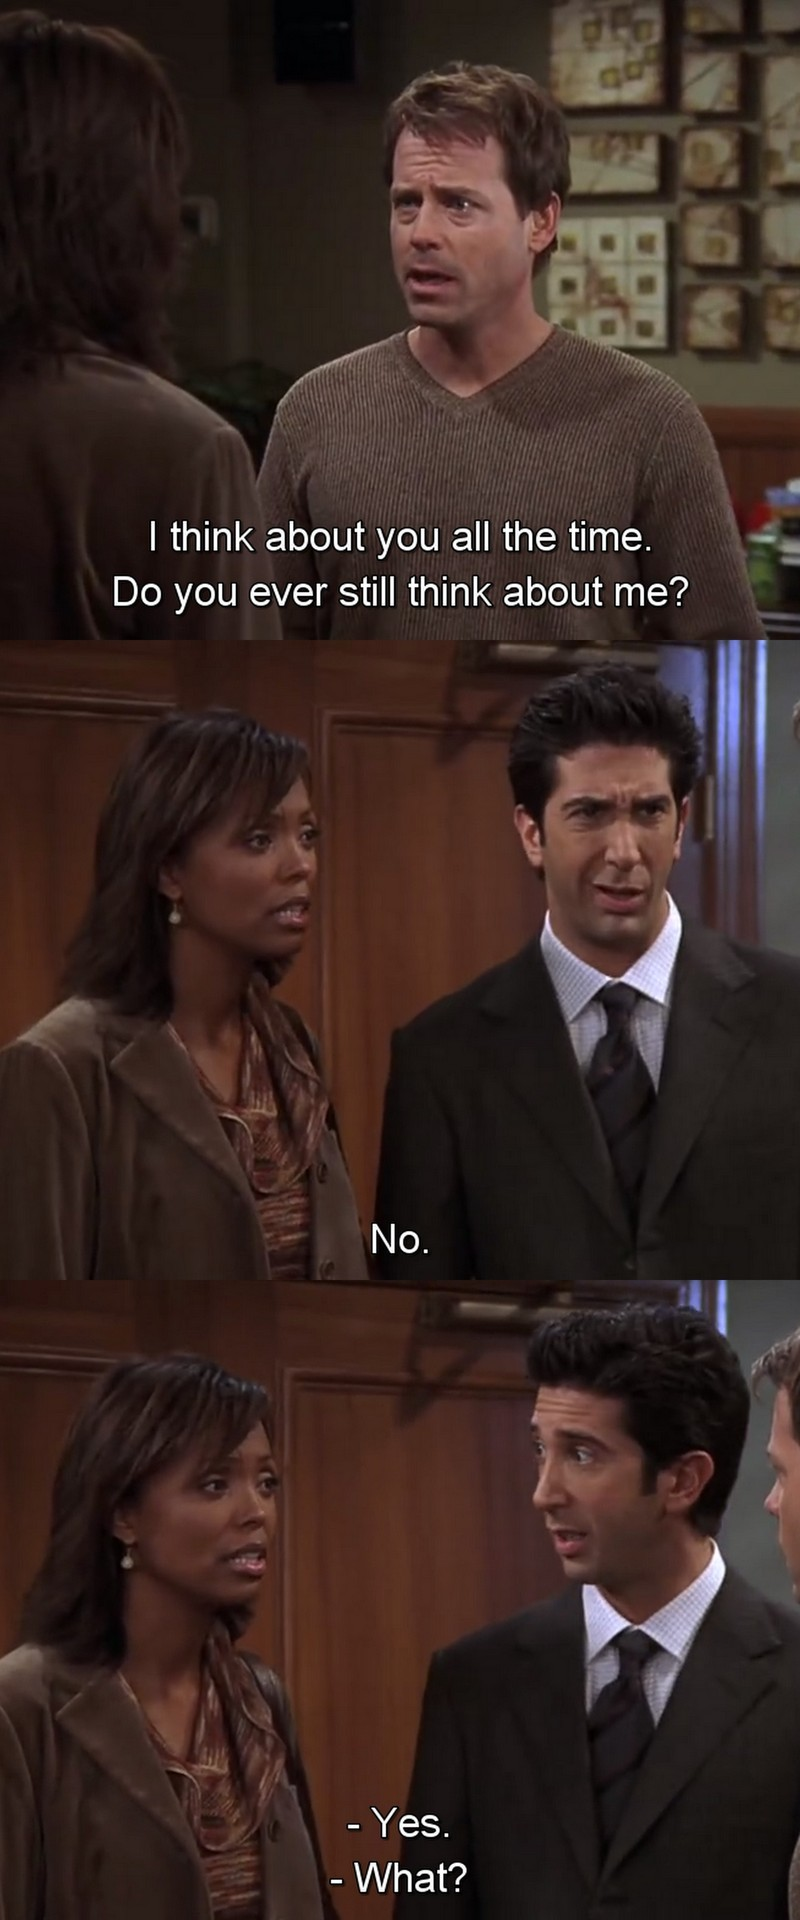 10 x 06: The One with Ross's Grant